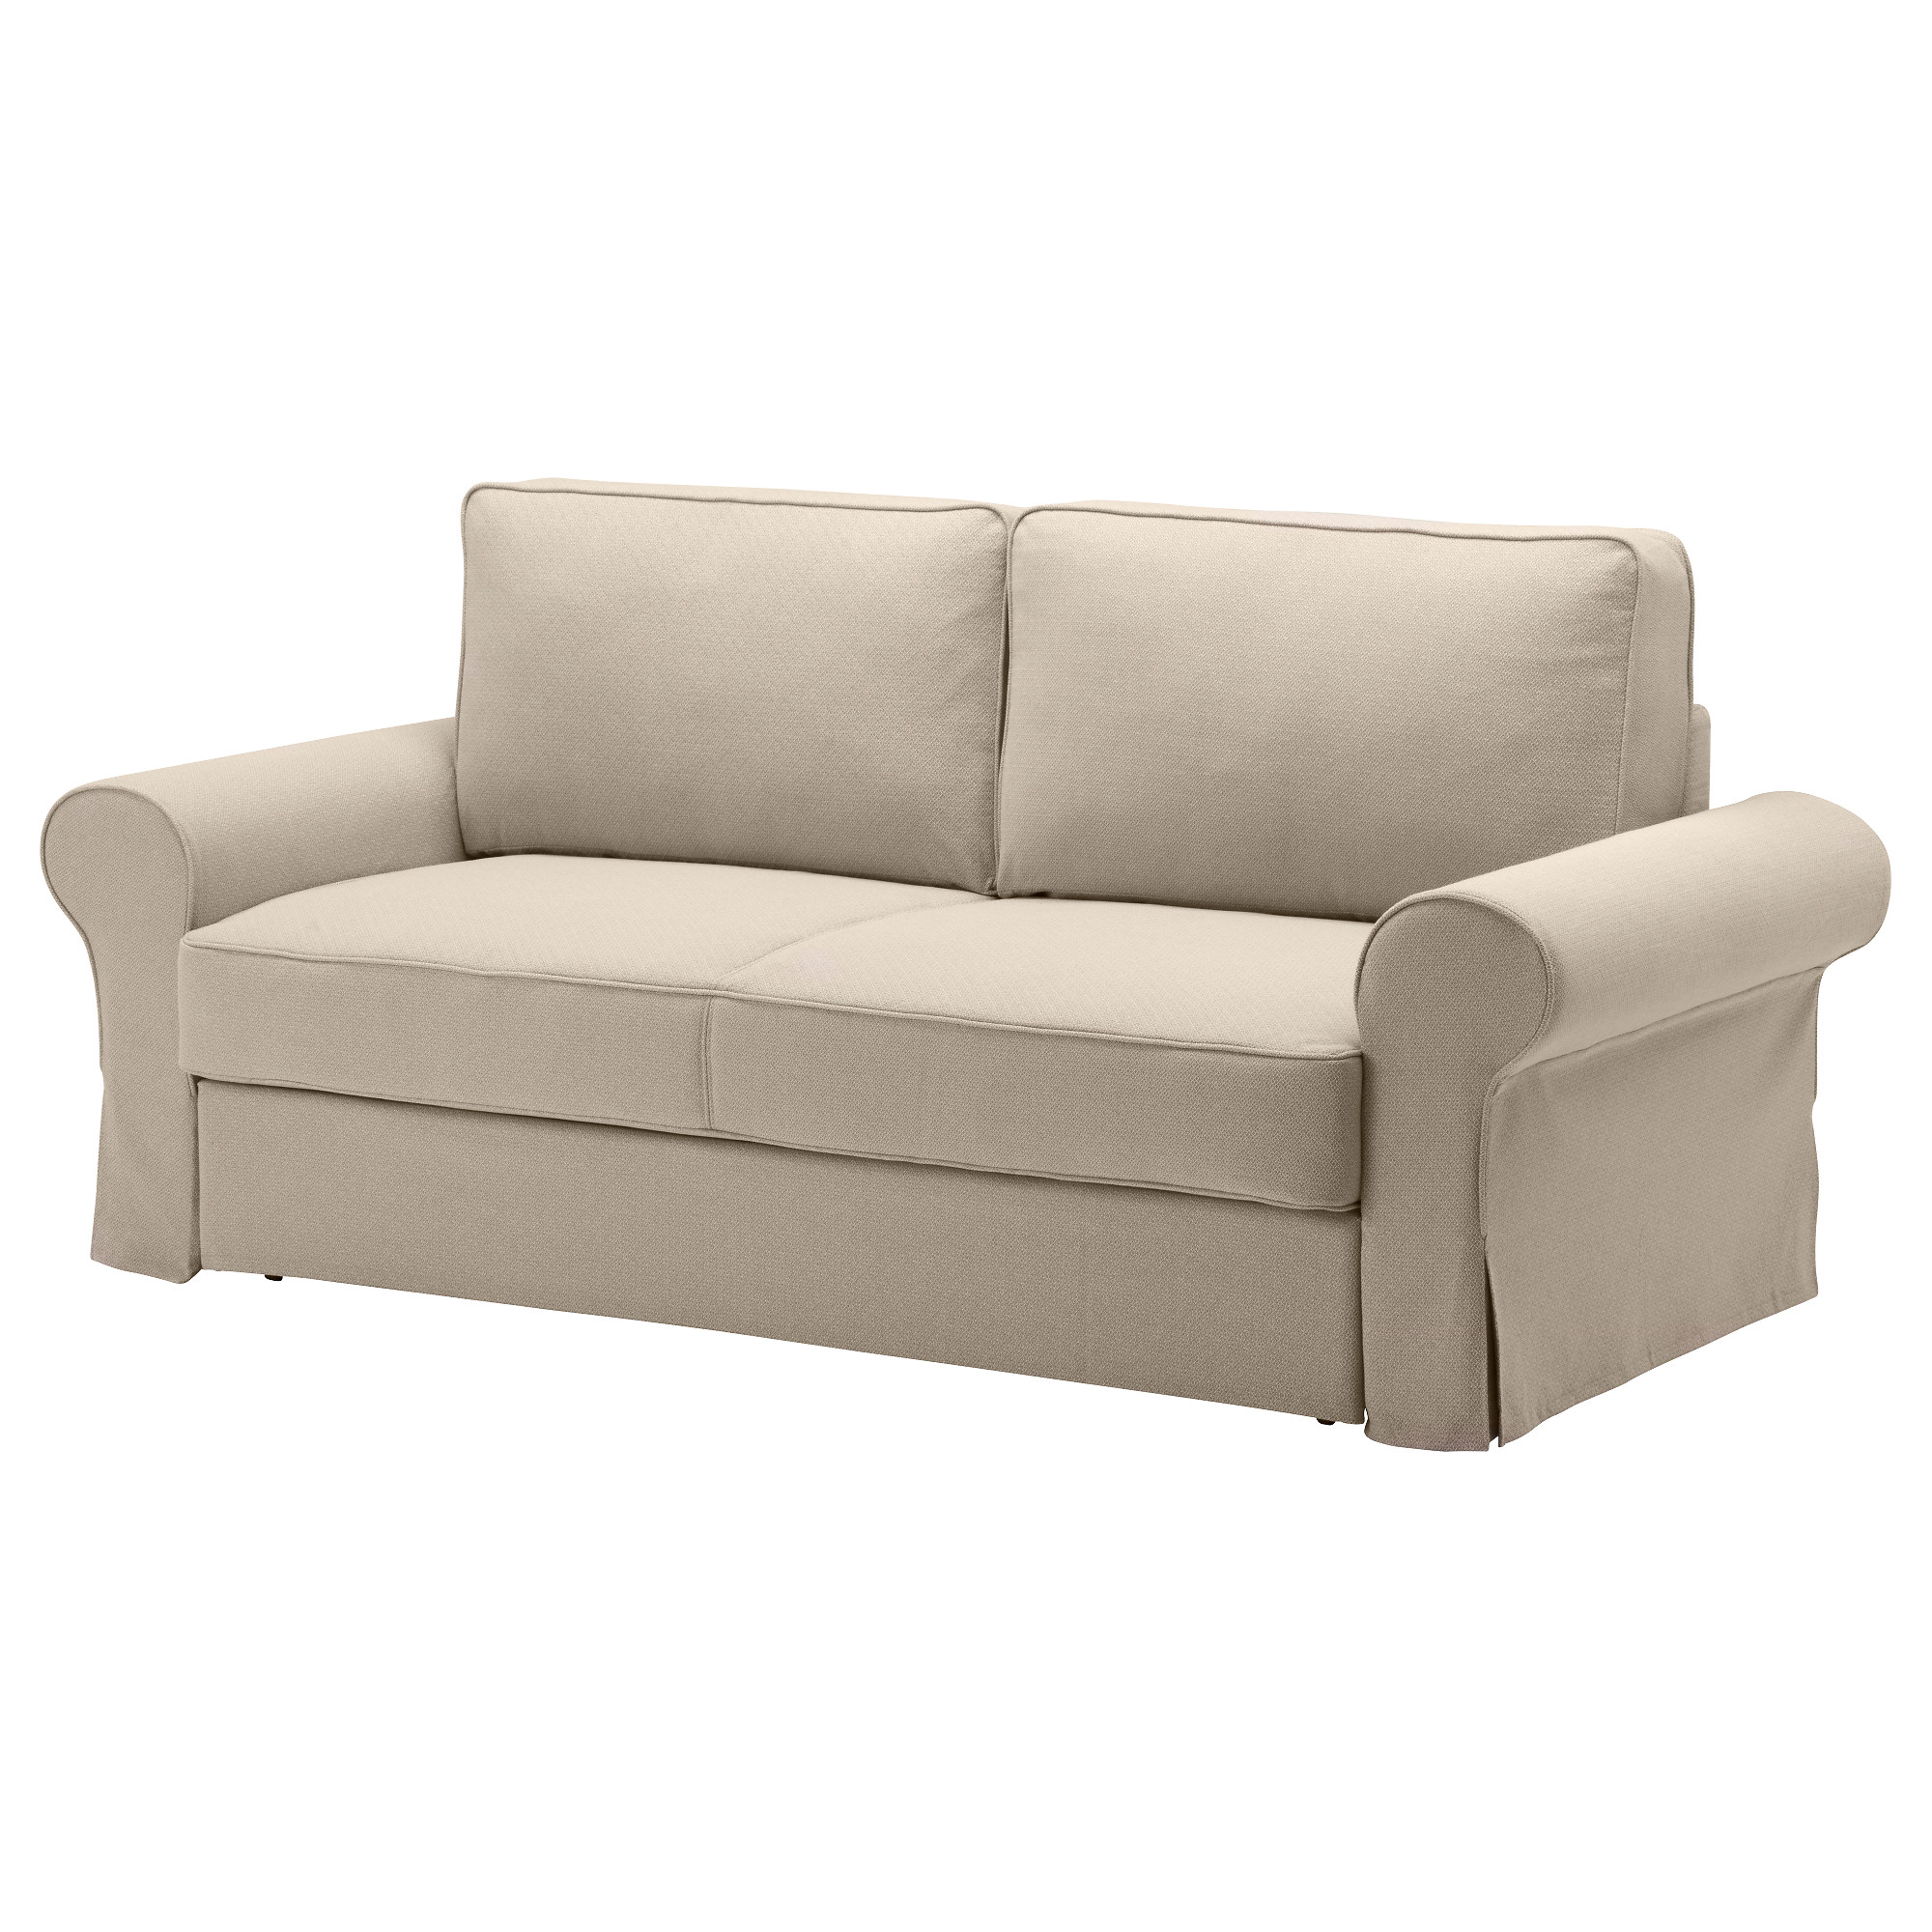 Canap convertible ikea my blog - Ikea canape cuir 2 places ...